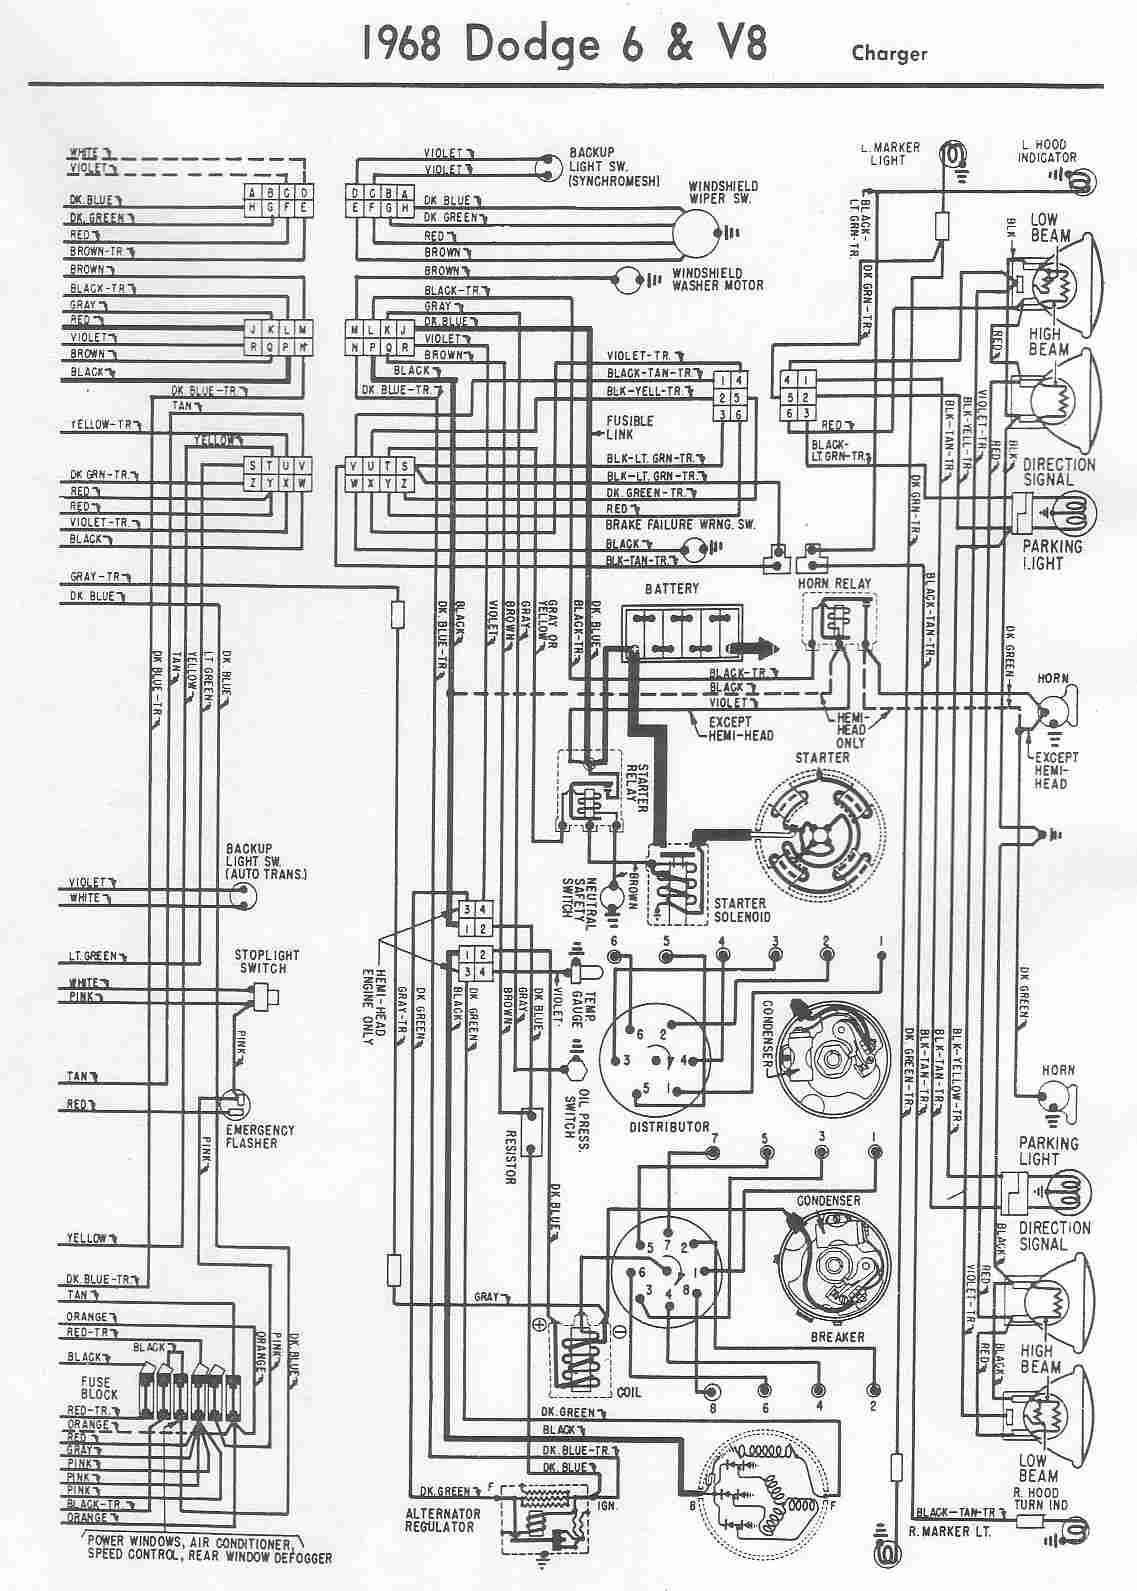 dodge car manuals wiring diagrams pdf fault codes rh automotive manuals net 1969 Dodge Charger Outline 1969 Dodge Charger Blueprints